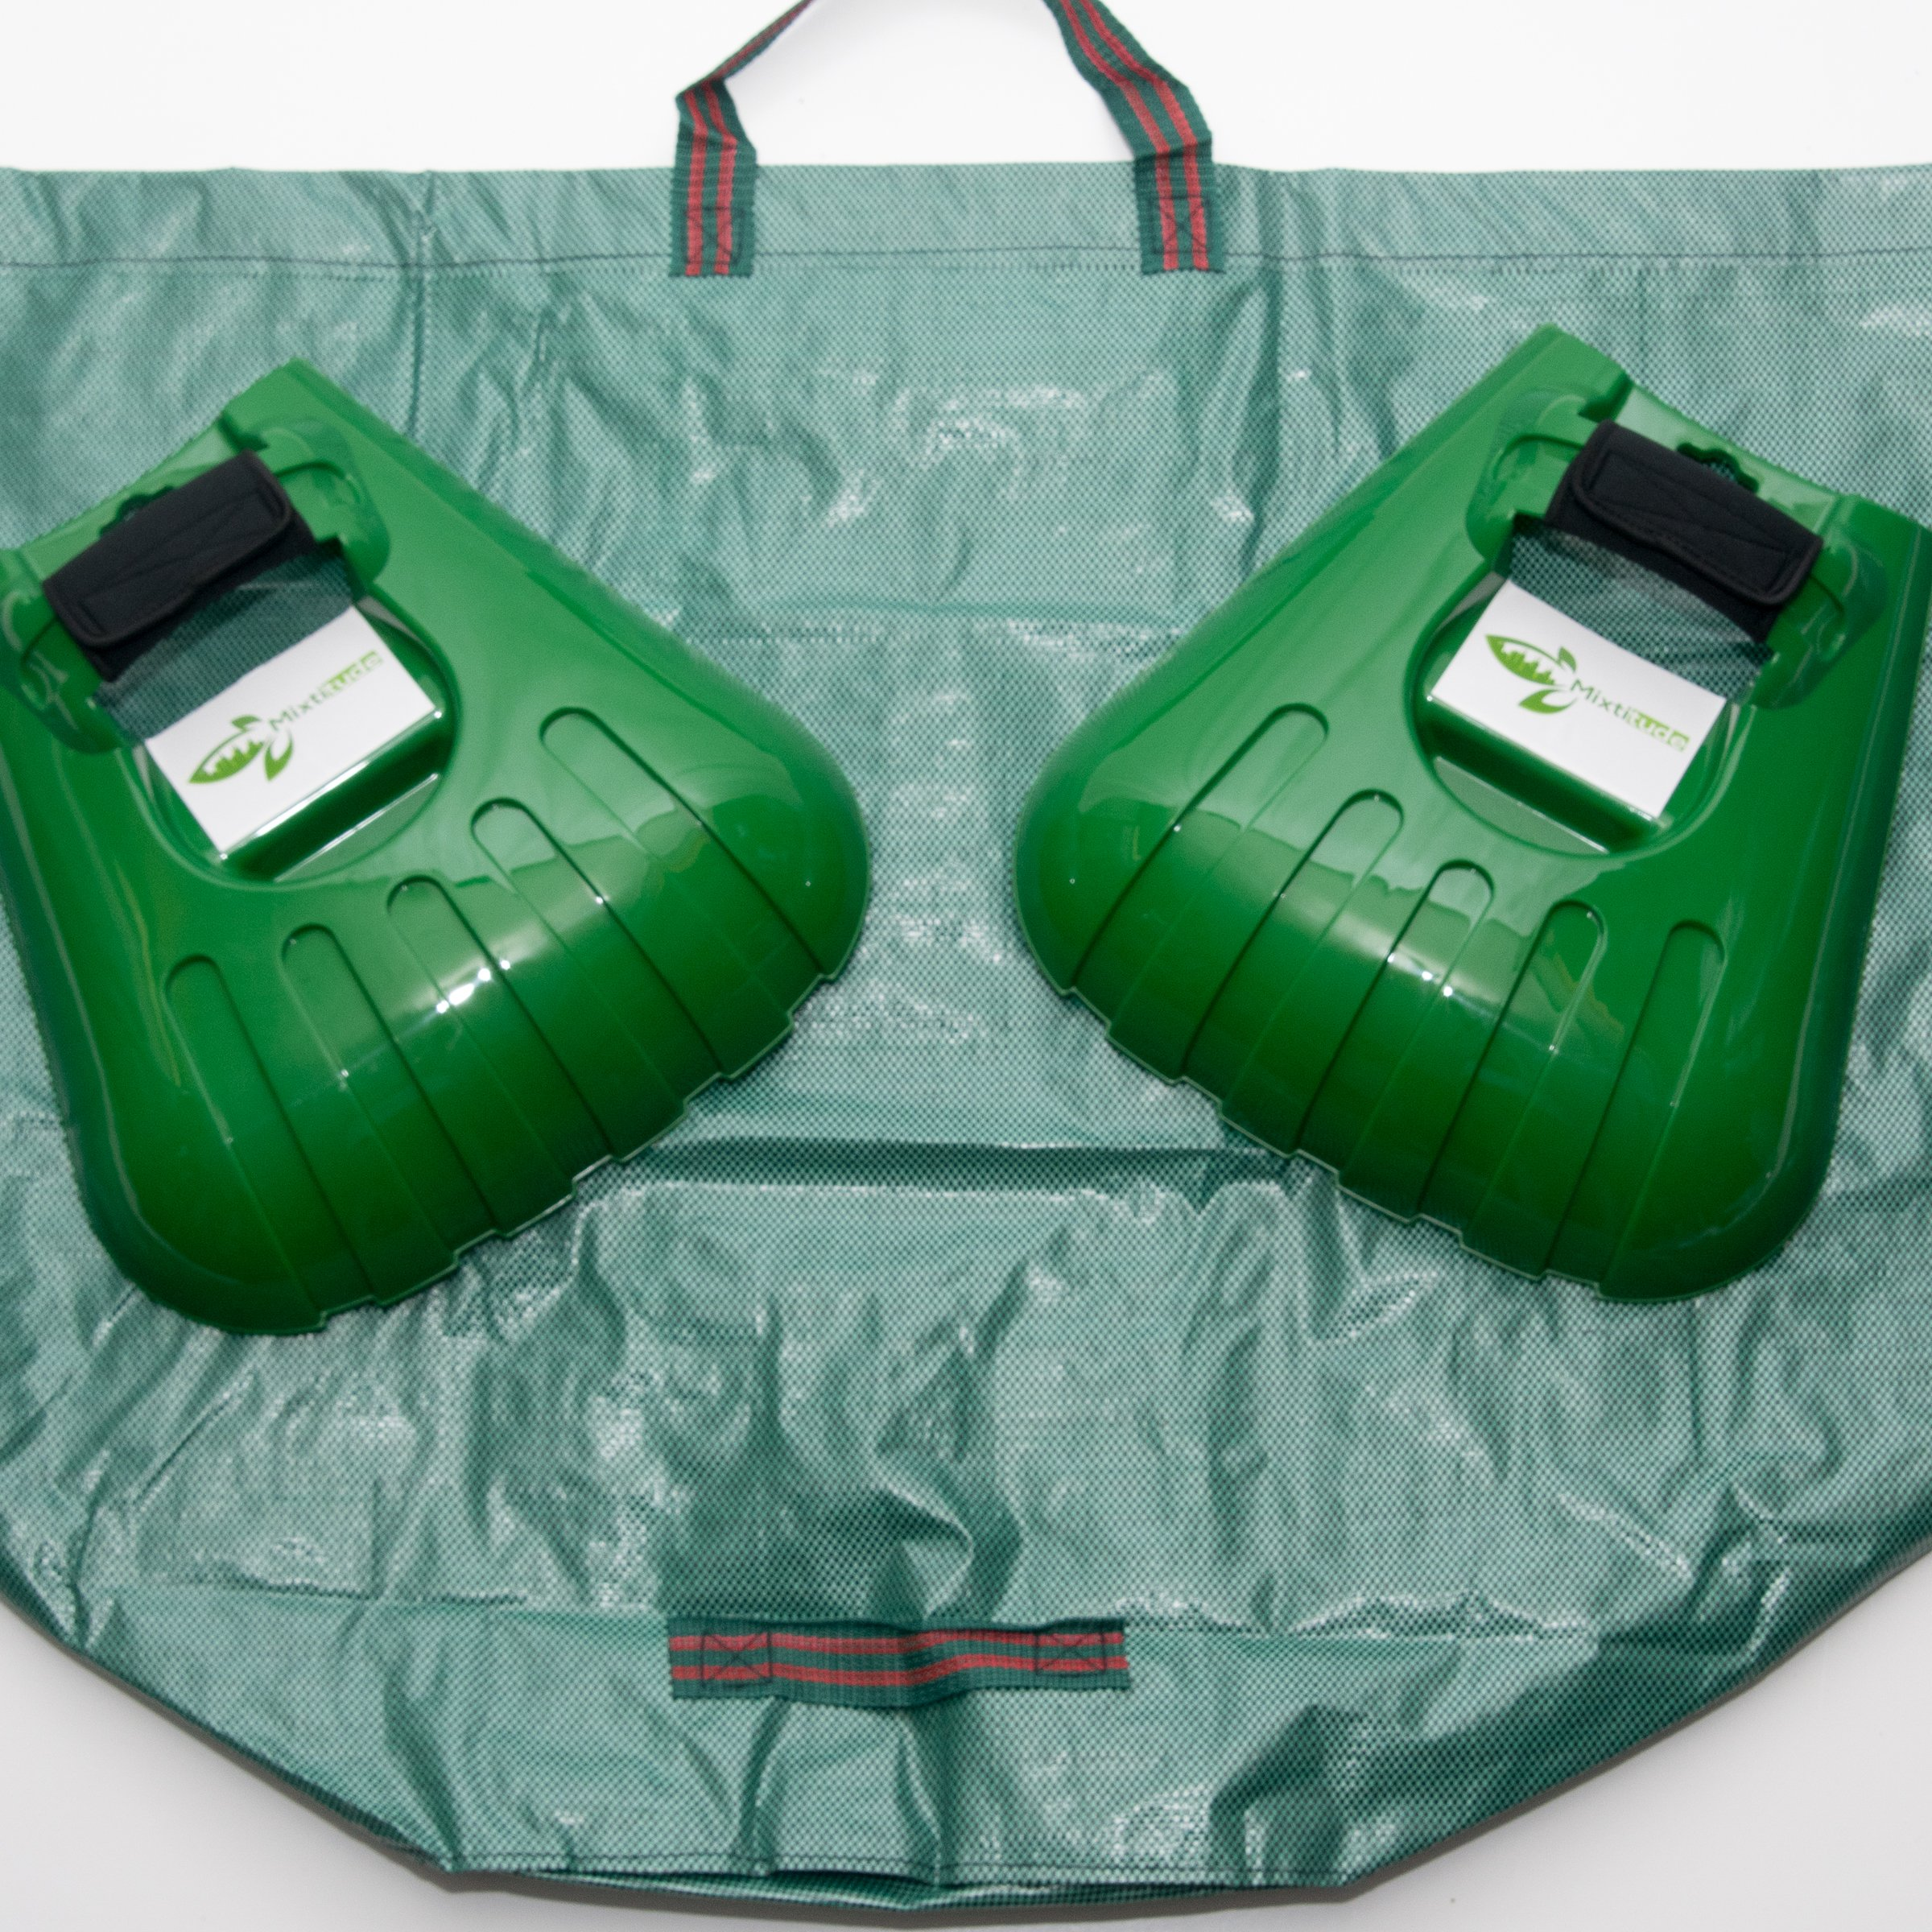 Mixitude Garden Hand Leaf Claw Scoops complete with Protective Wrist Pad and 72 Gallon Leaf Waste Bag by Mixtitude (Image #2)